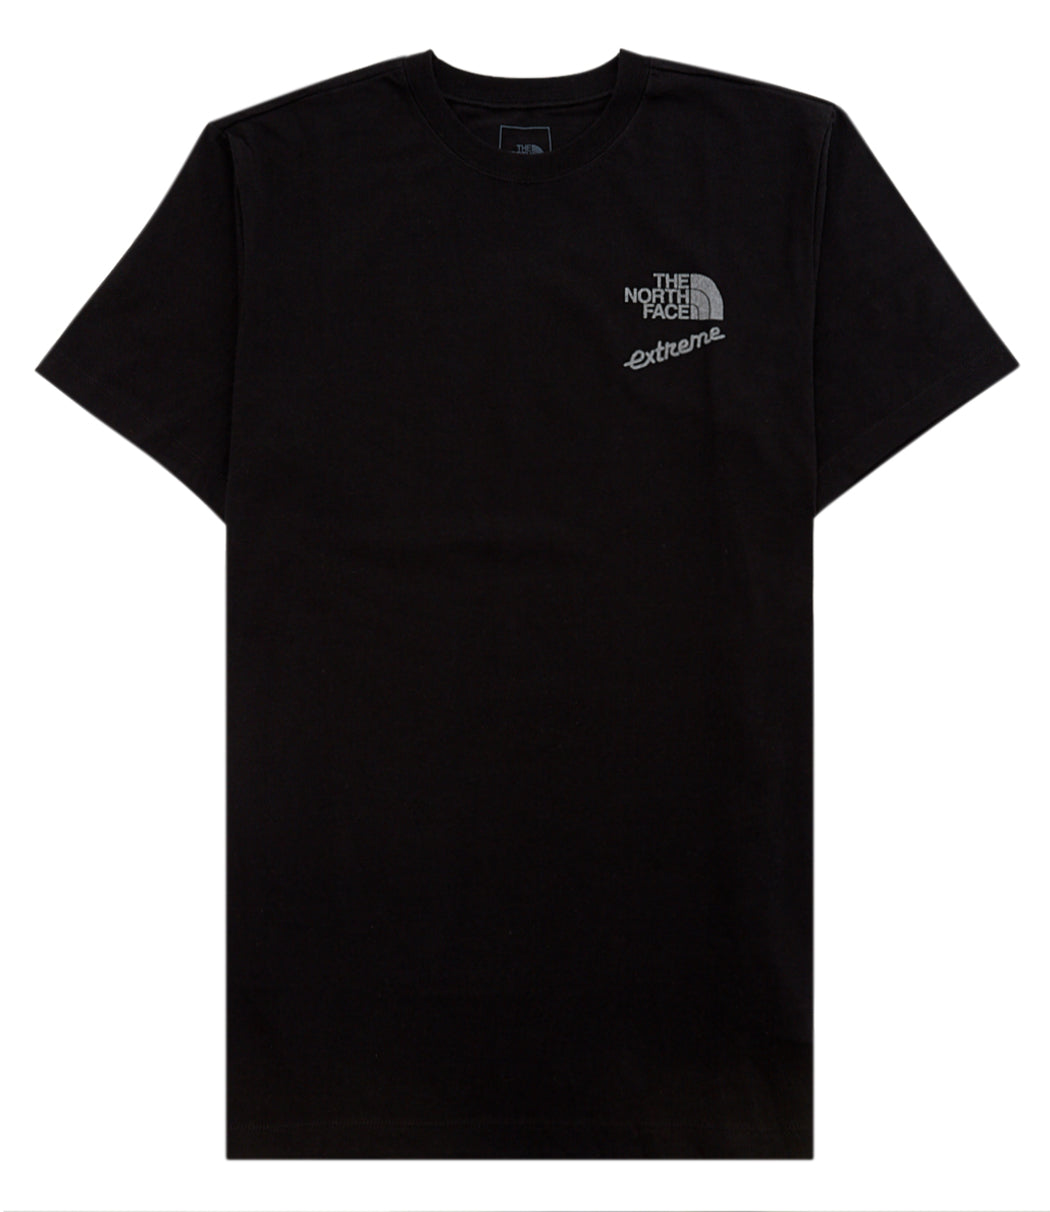 THE NORTH FACE M S/S EXTREME TEE